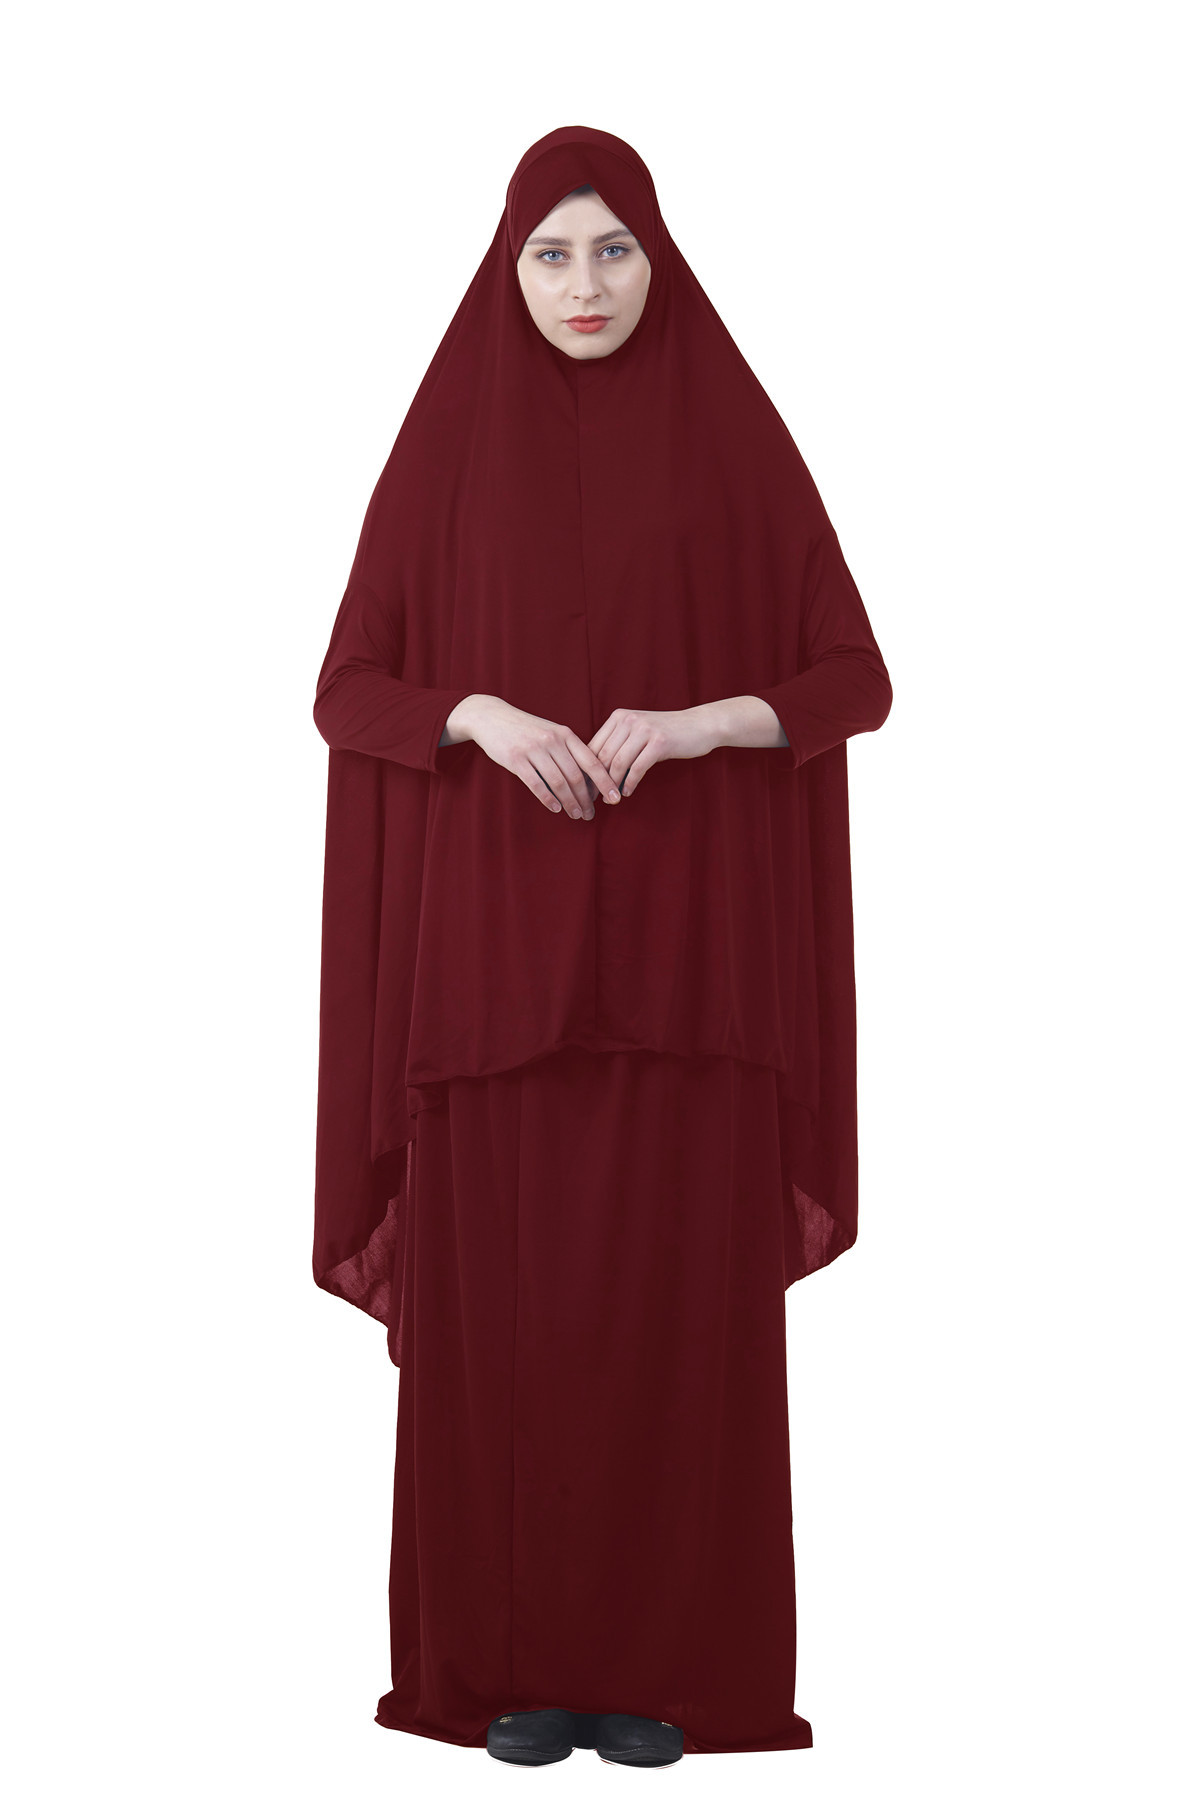 Image 4 - Formal Muslim Prayer Garment Sets Women Hijab Dress Abaya Islamic